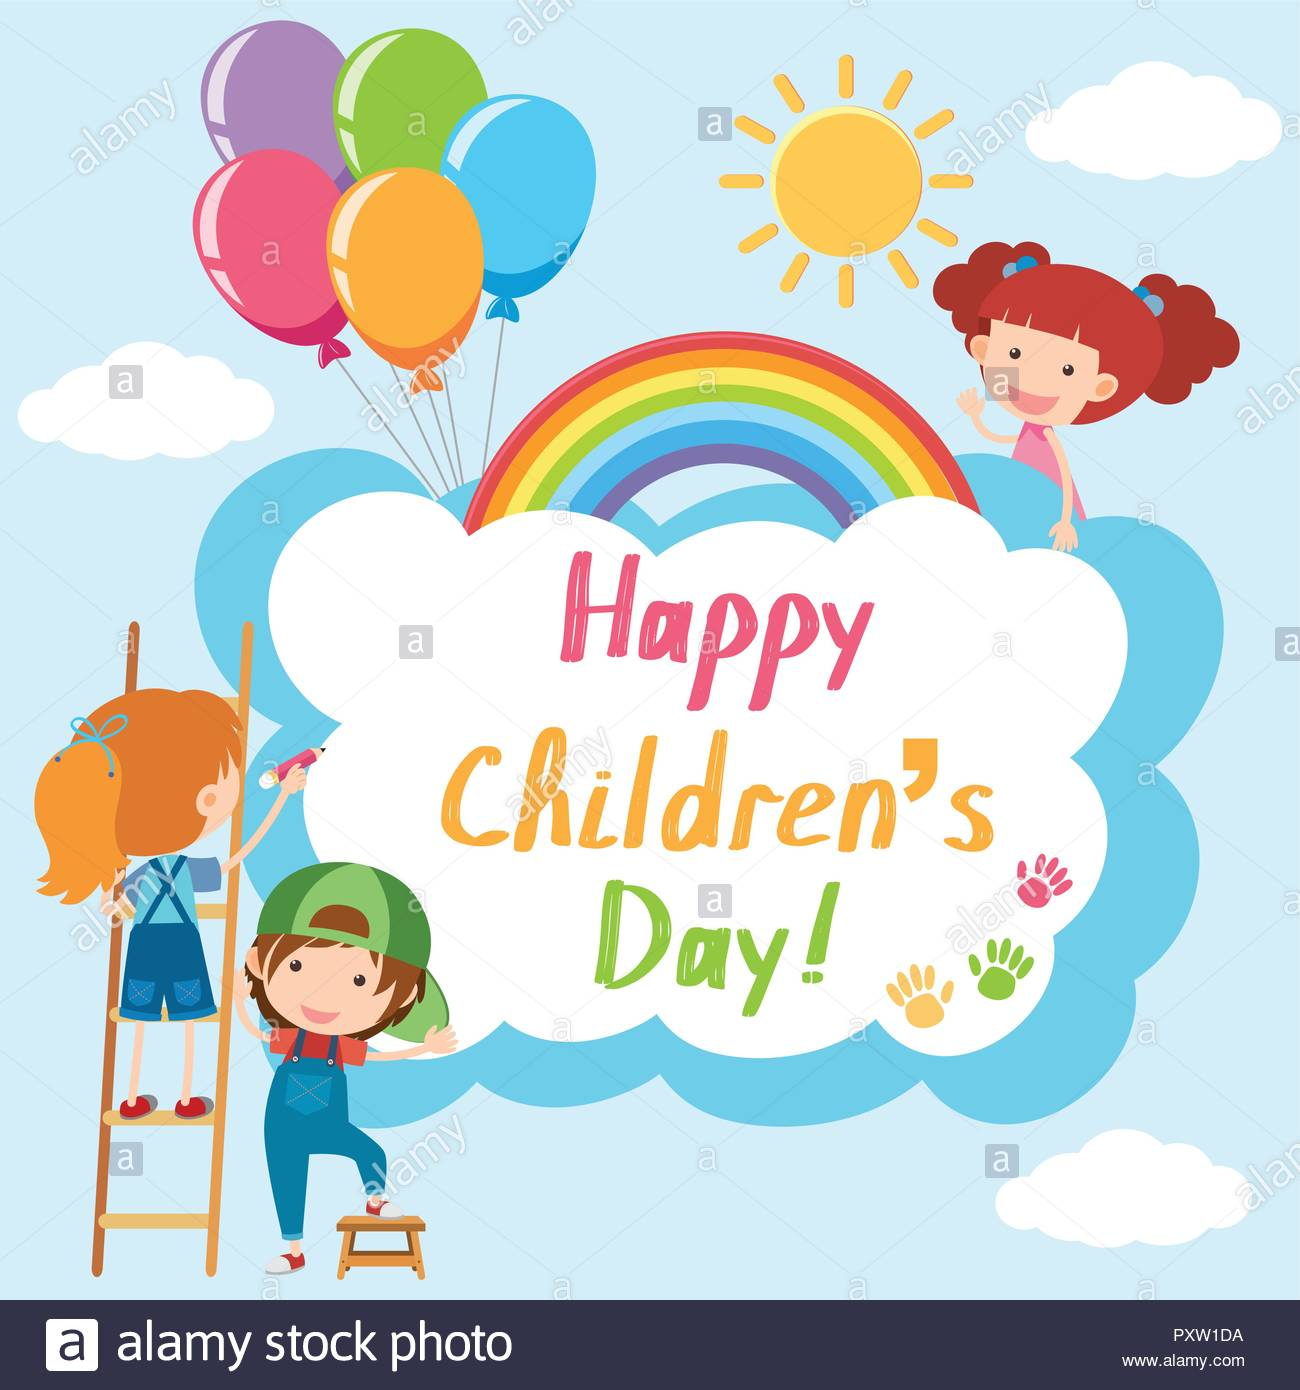 Happy Children's day poster with kids in sky illustration Stock.